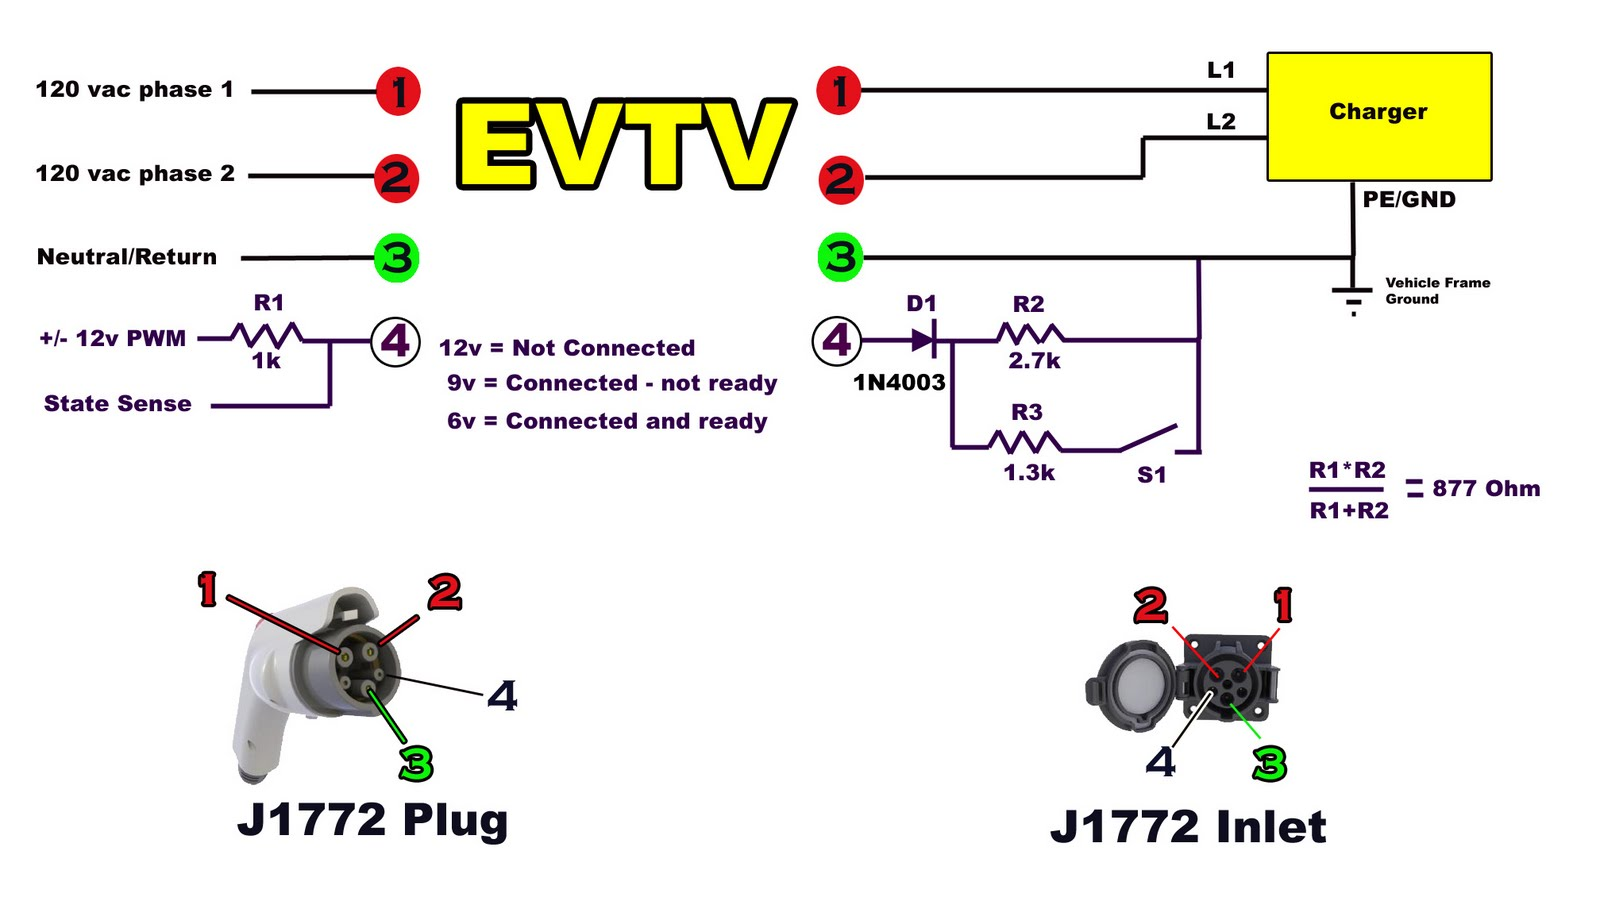 evtv me j1772 2009 charging for your ev rh jackrickard blogspot com Simple Wiring Diagrams Simple Wiring Diagrams